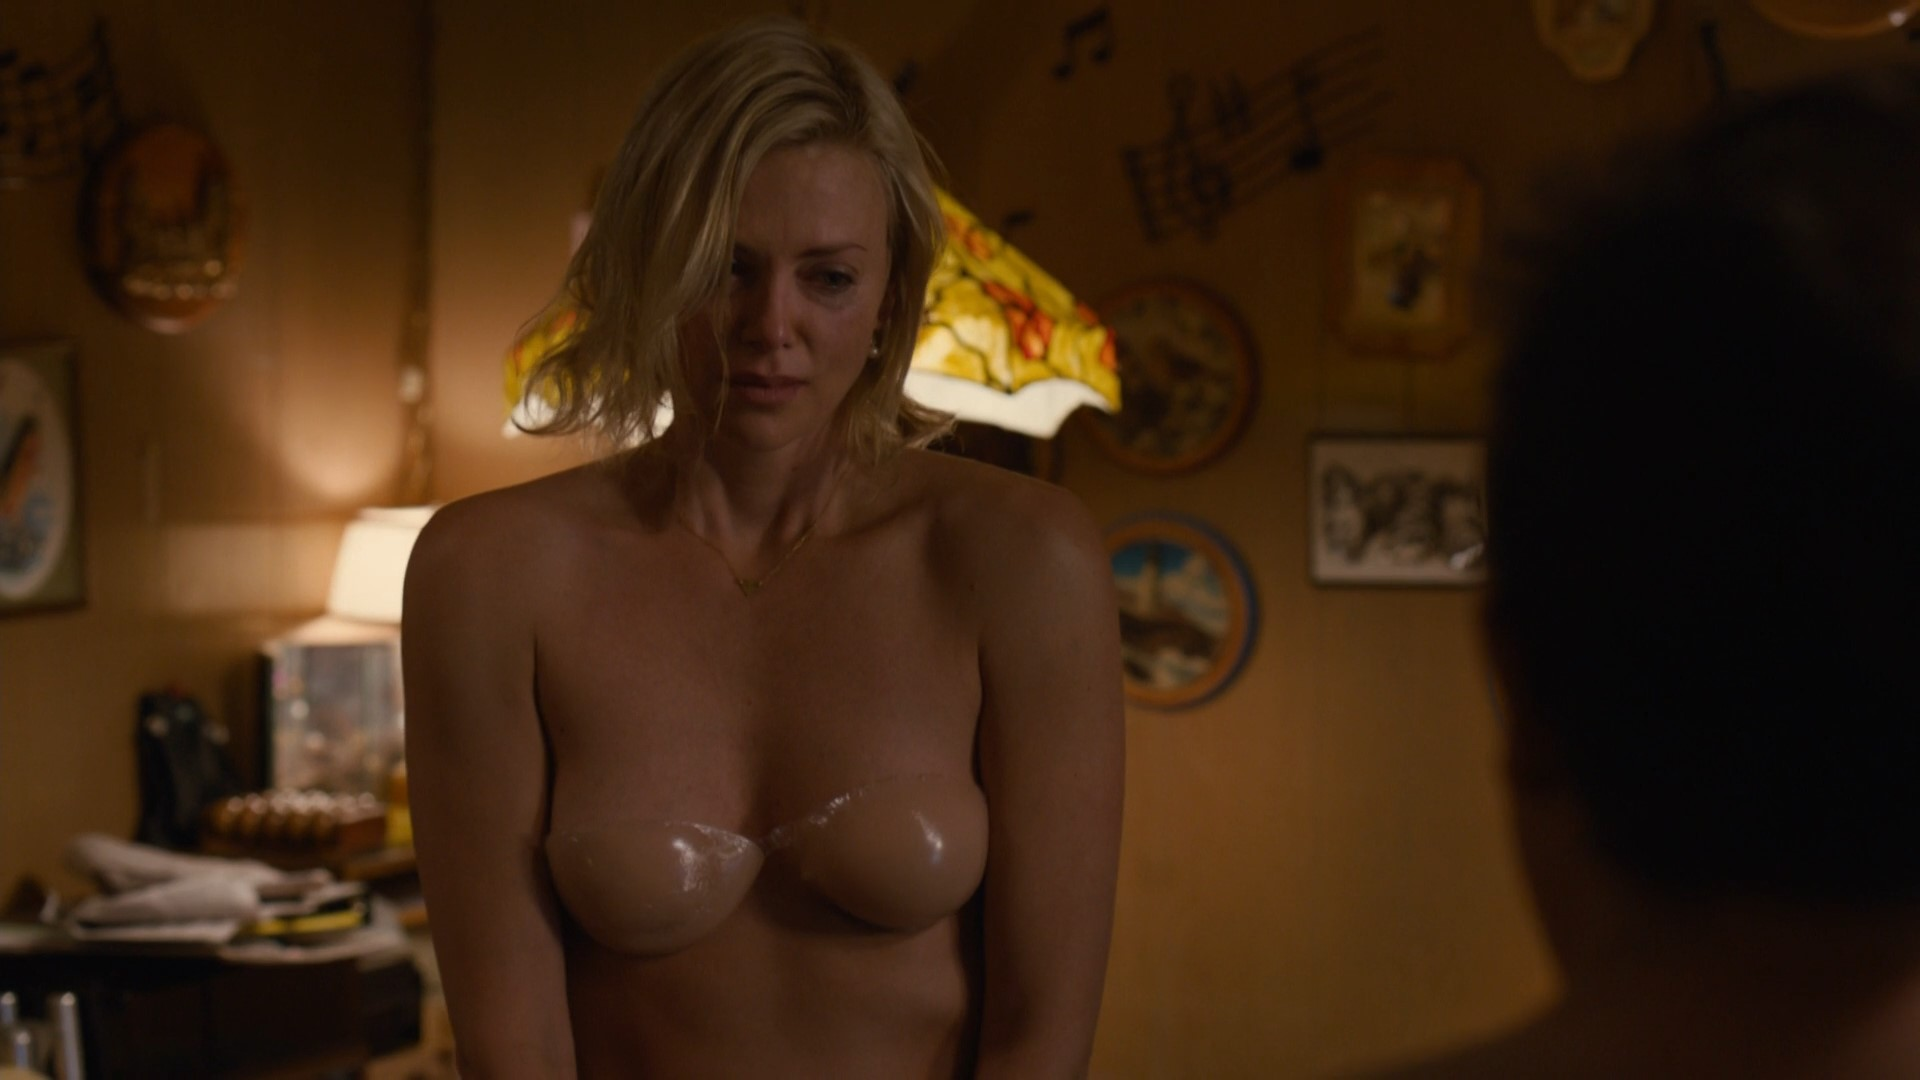 charlize theron young adult nude